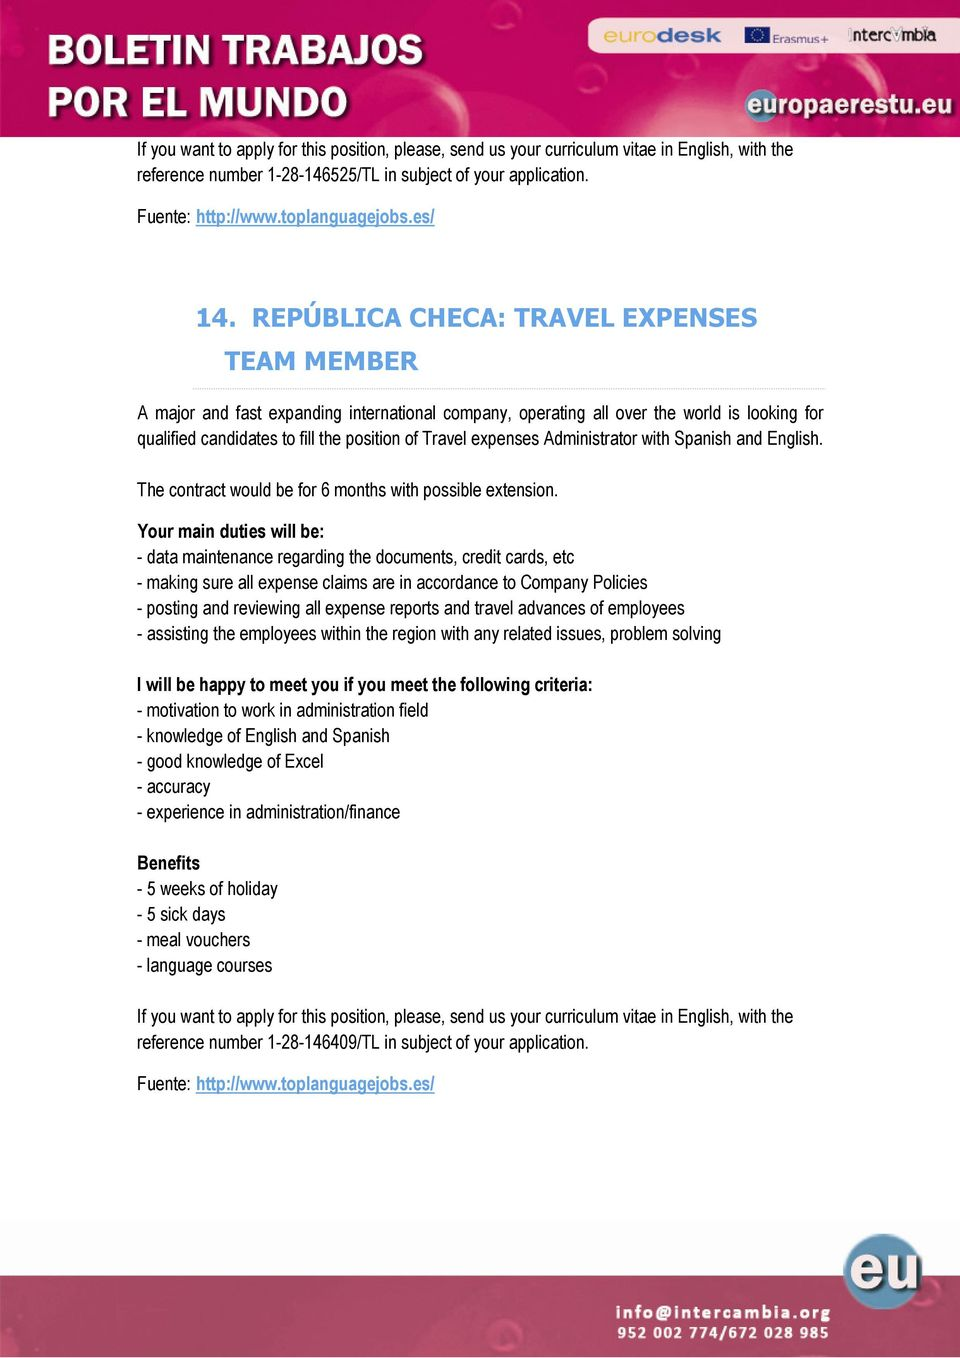 REPÚBLICA CHECA: TRAVEL EXPENSES TEAM MEMBER A major and fast expanding international company, operating all over the world is looking for qualified candidates to fill the position of Travel expenses